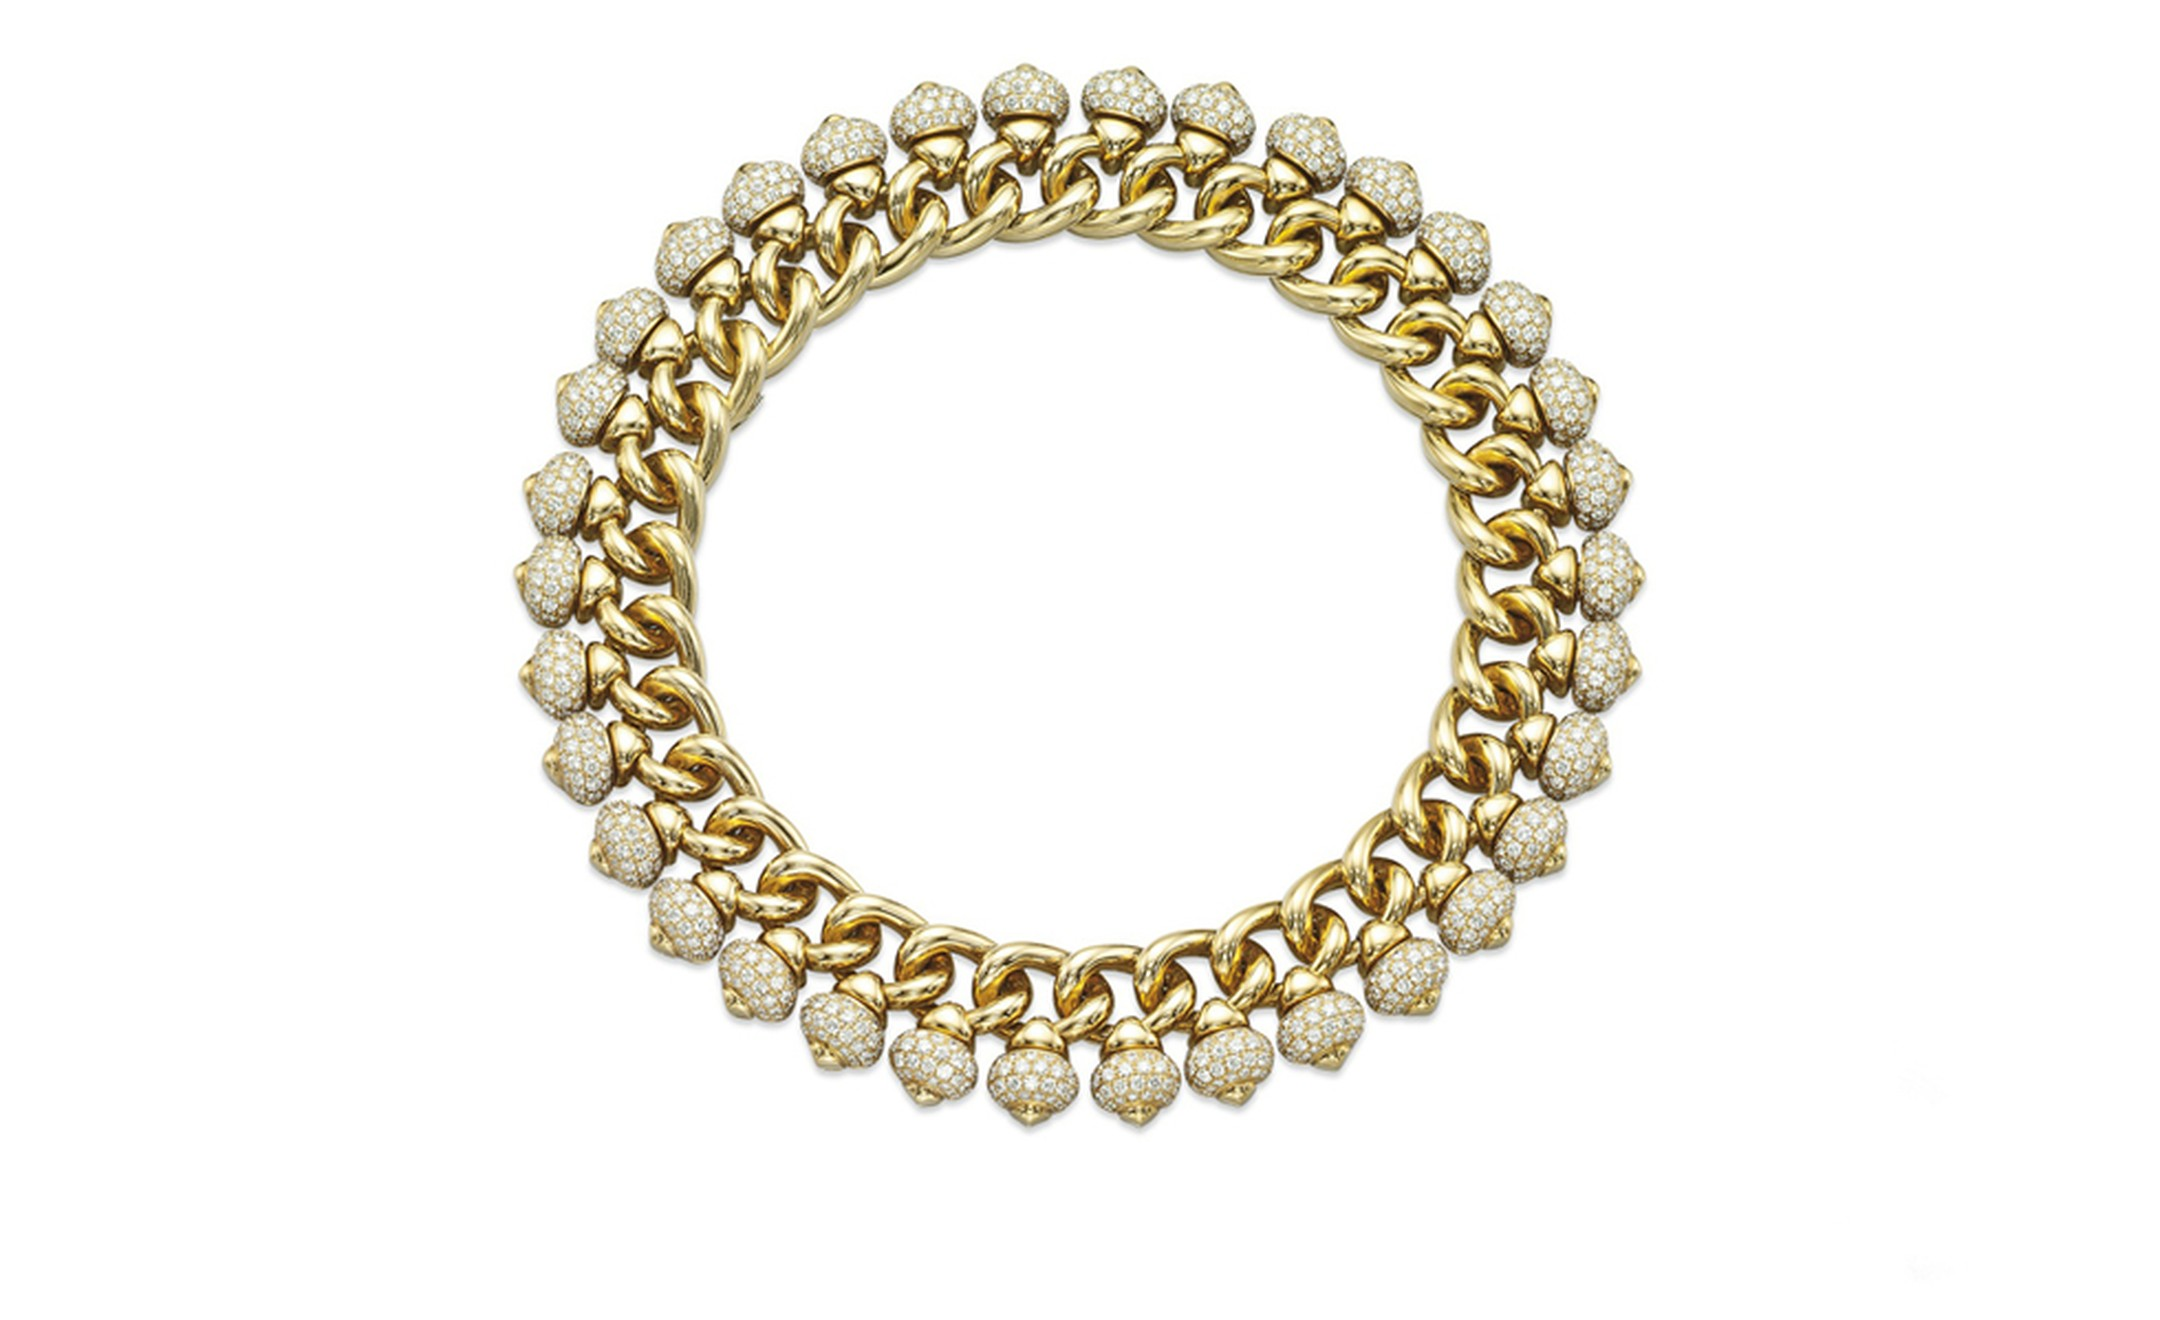 A diamond and yellow gold necklace, by Bulgari. Estimate: US$ 70,000-90,000